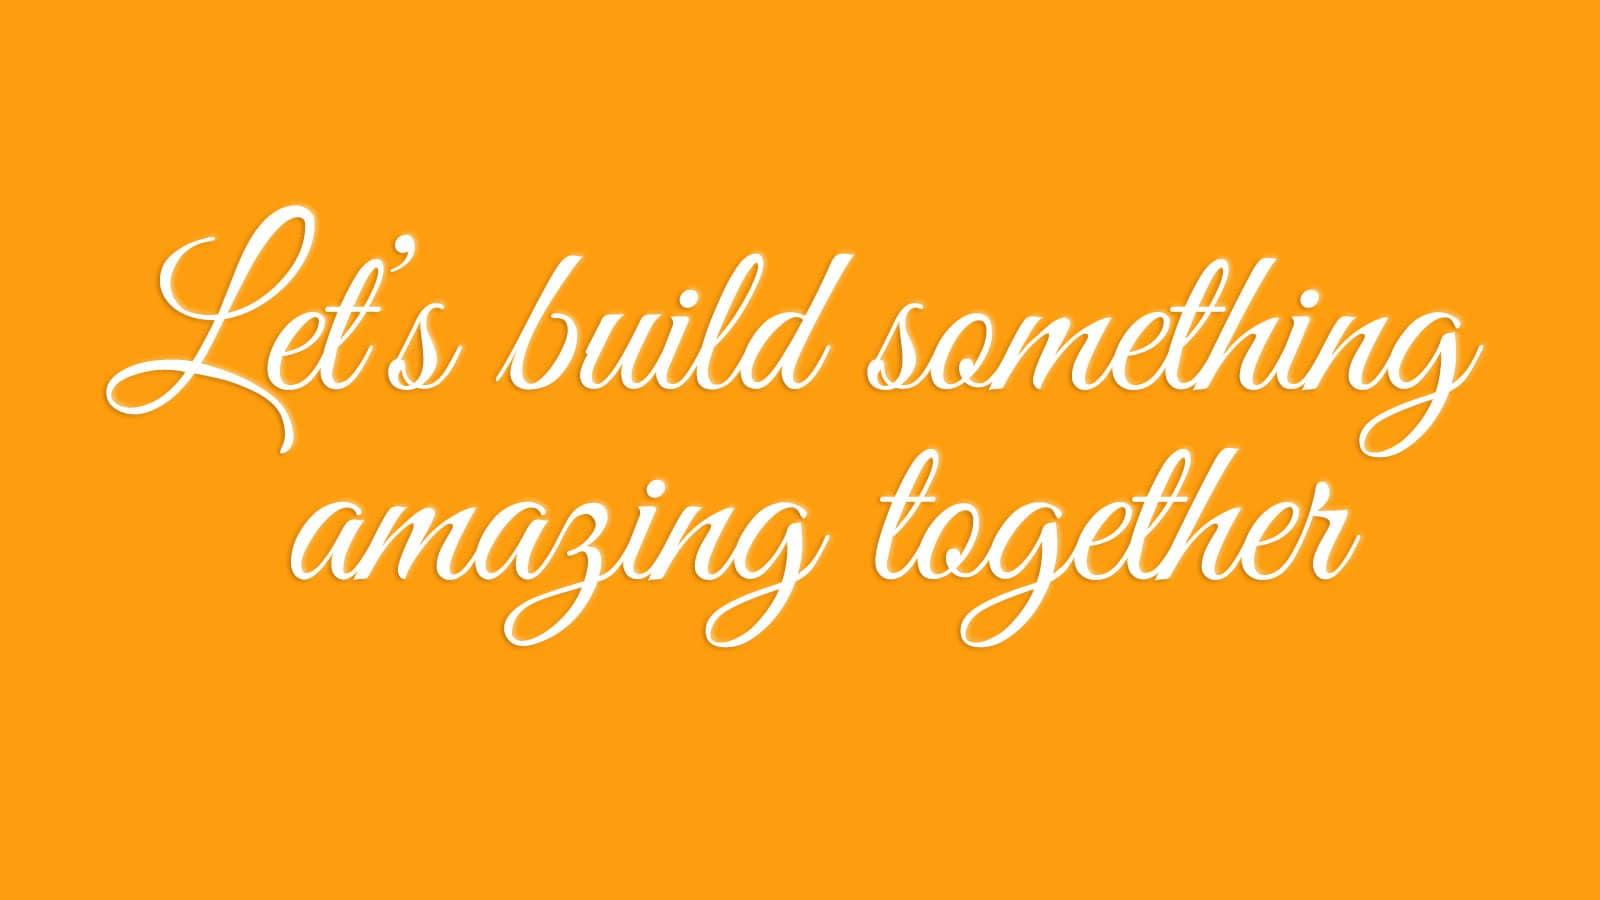 let's-build-a-great-website-together-70